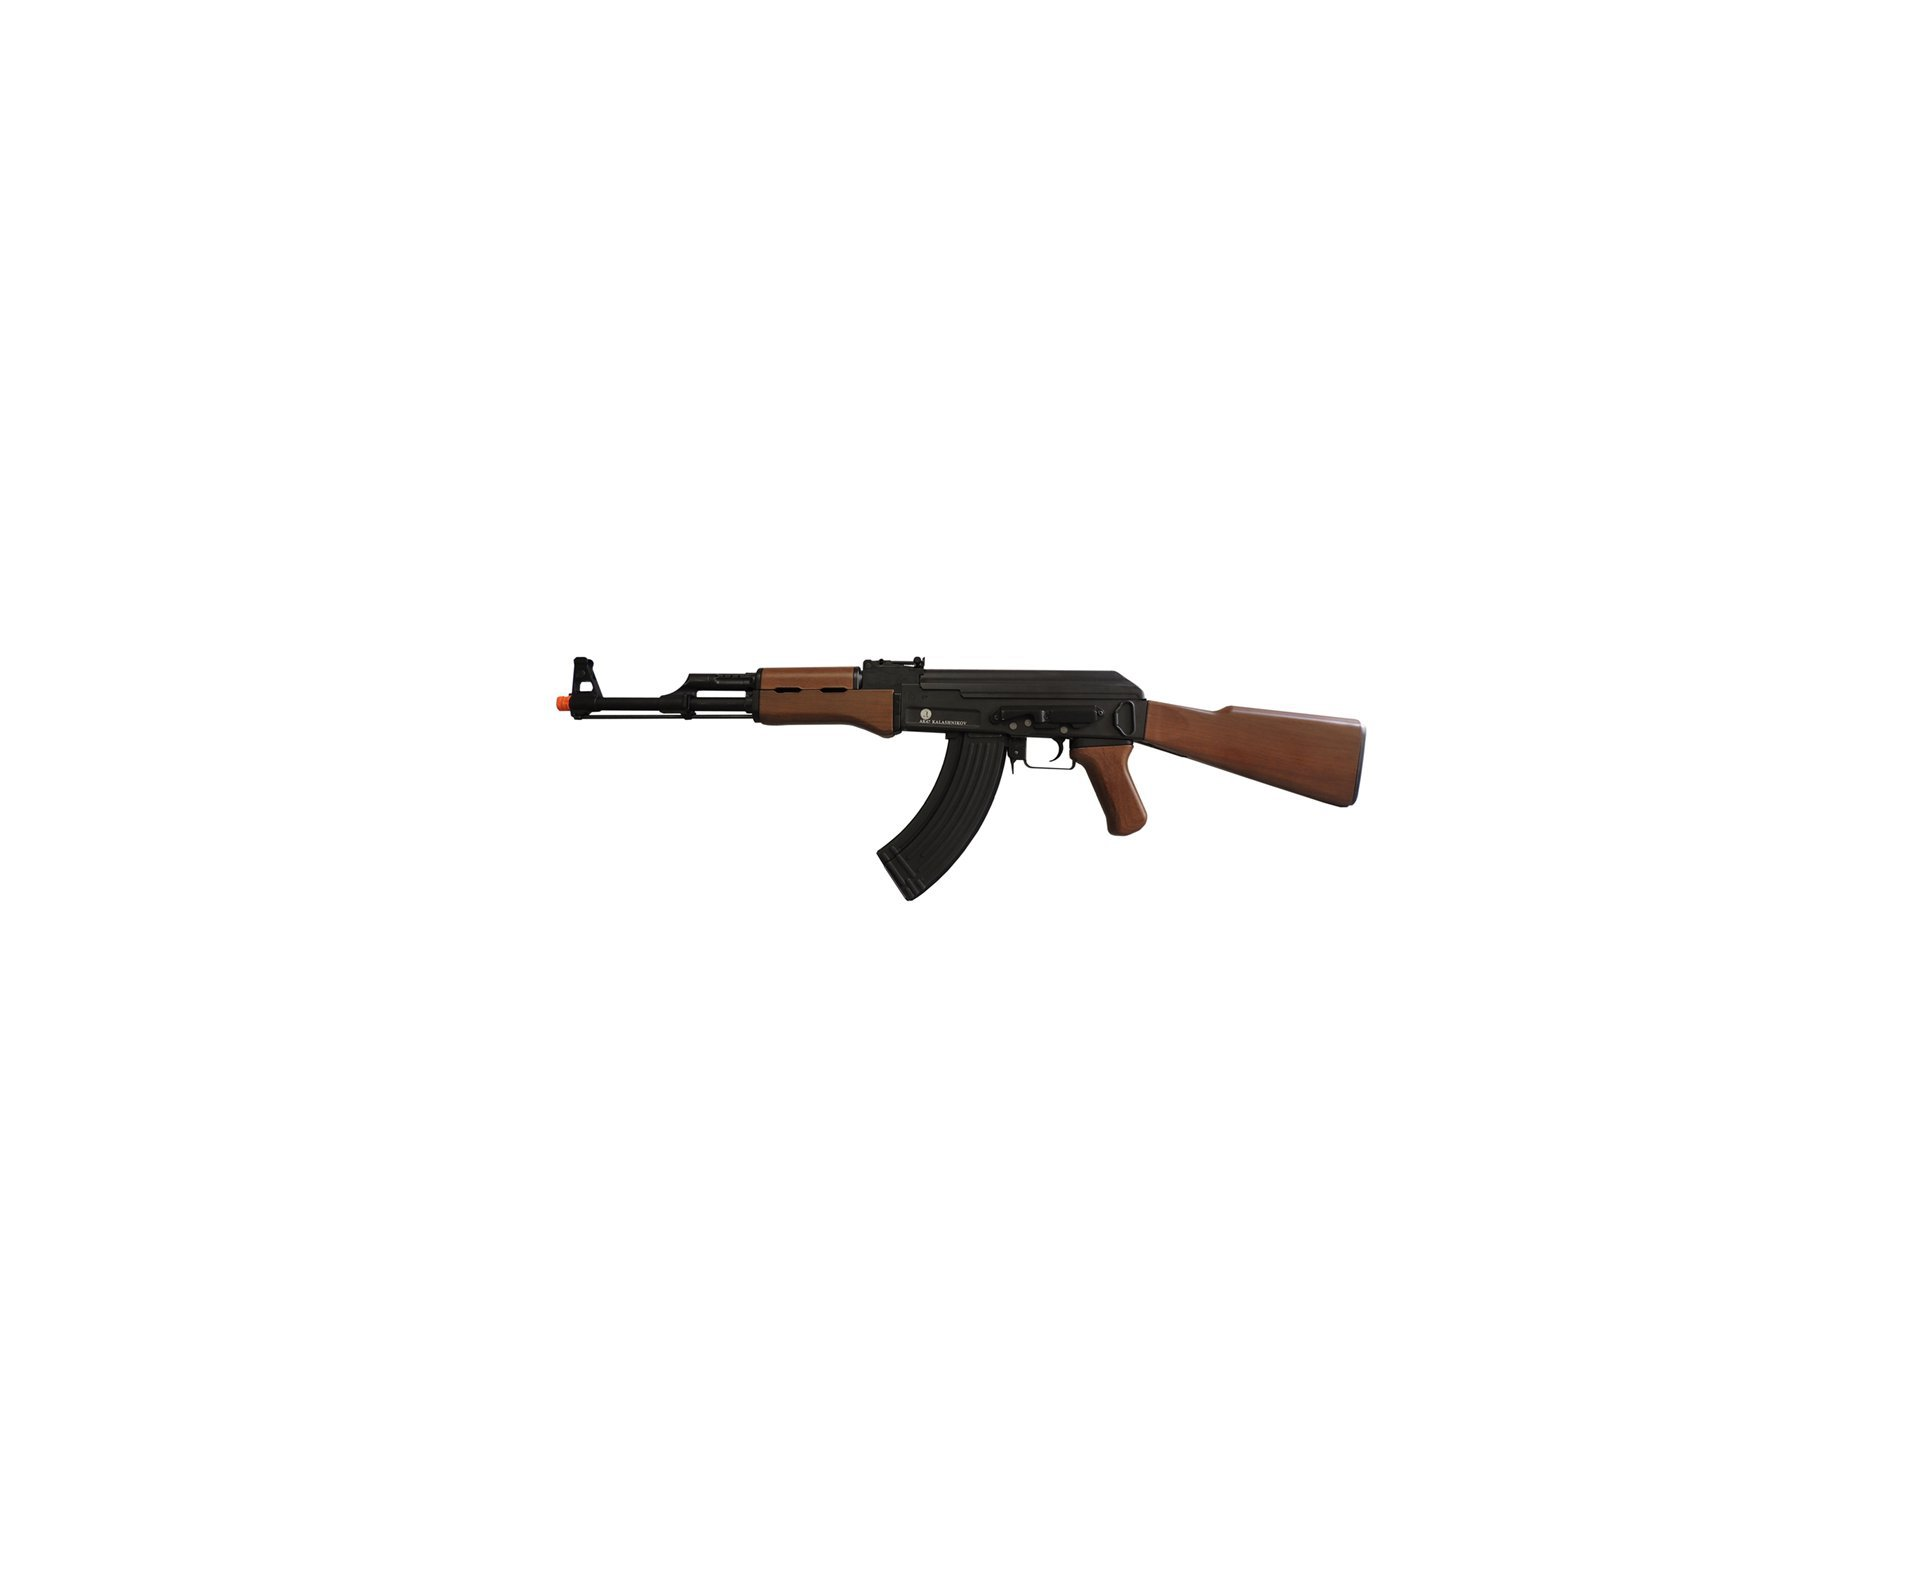 Rifle De Airsoft Kalashnikov Ak47 - Full Metal Blowback - 6,0 Mm - G&g